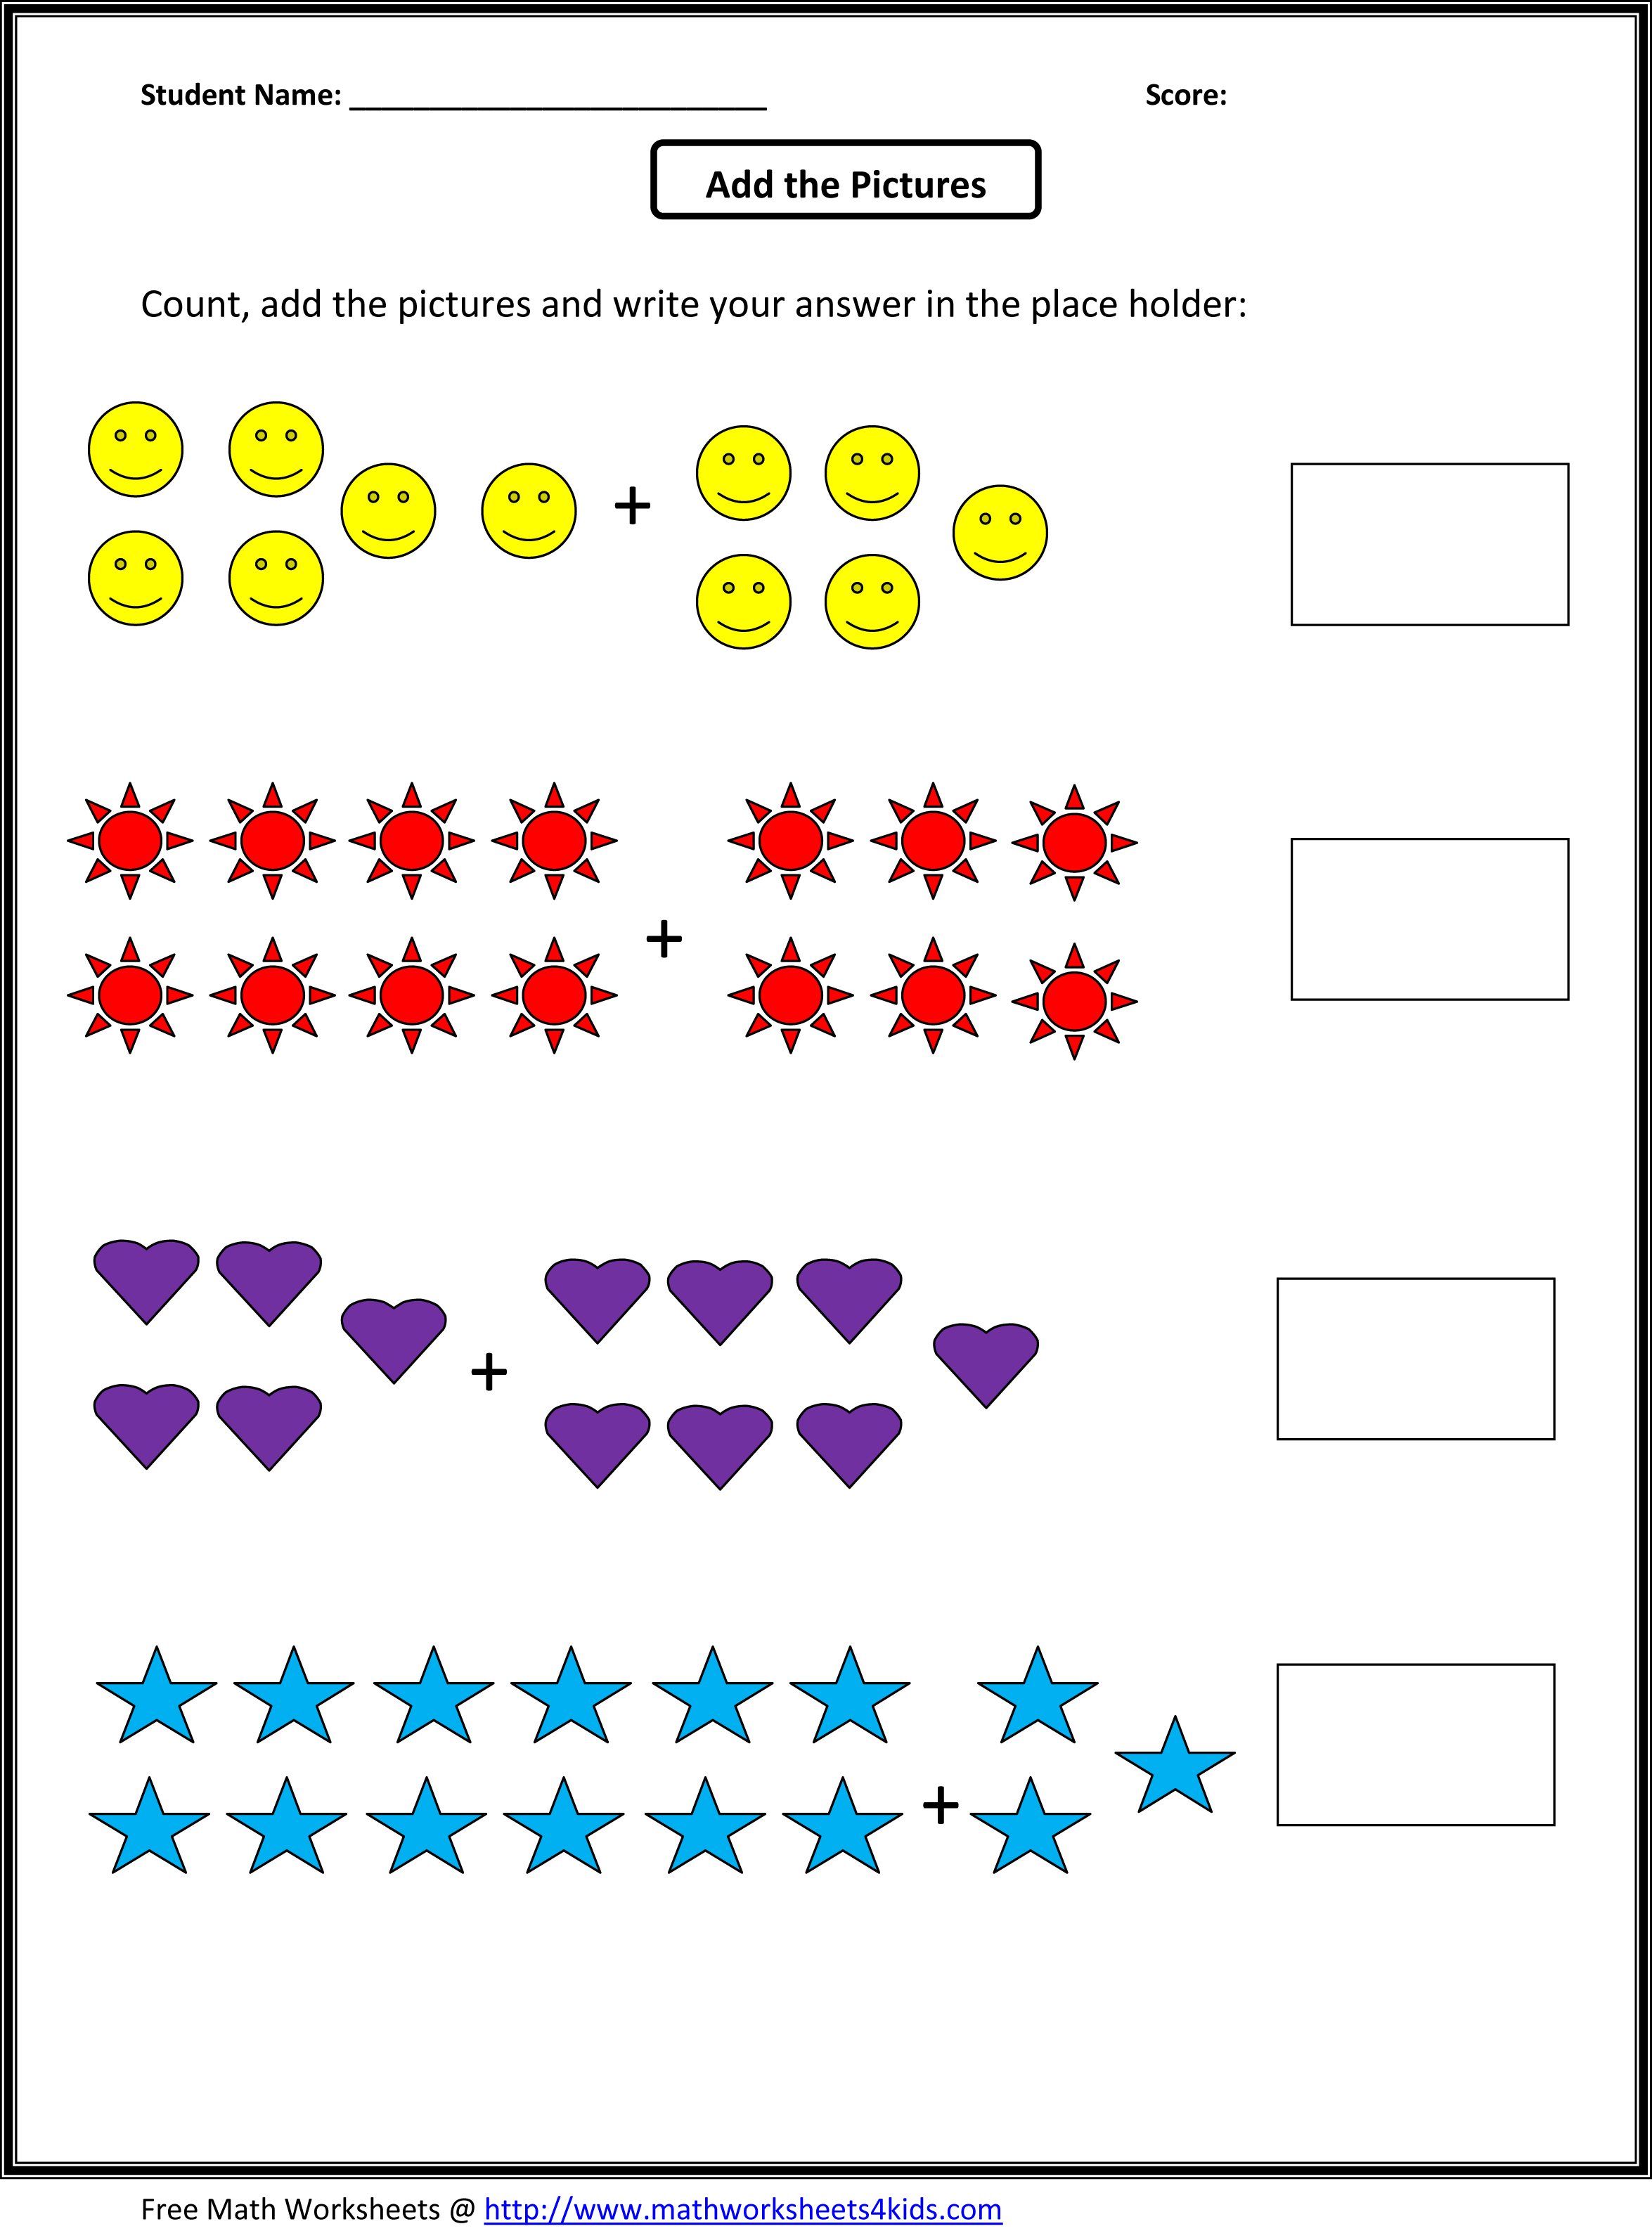 Proatmealus  Unique Grade  Maths Worksheet  Reocurent With Excellent Math Worksheets For St Grade Free  Reocurent With Alluring Free Printable Th Grade Grammar Worksheets Also Ay Phonics Worksheet In Addition Ordering Decimal Worksheets And Esl Worksheets Elementary As Well As Grade  Vocabulary Worksheets Additionally Statistics Worksheets For High School From Reocurentcom With Proatmealus  Excellent Grade  Maths Worksheet  Reocurent With Alluring Math Worksheets For St Grade Free  Reocurent And Unique Free Printable Th Grade Grammar Worksheets Also Ay Phonics Worksheet In Addition Ordering Decimal Worksheets From Reocurentcom